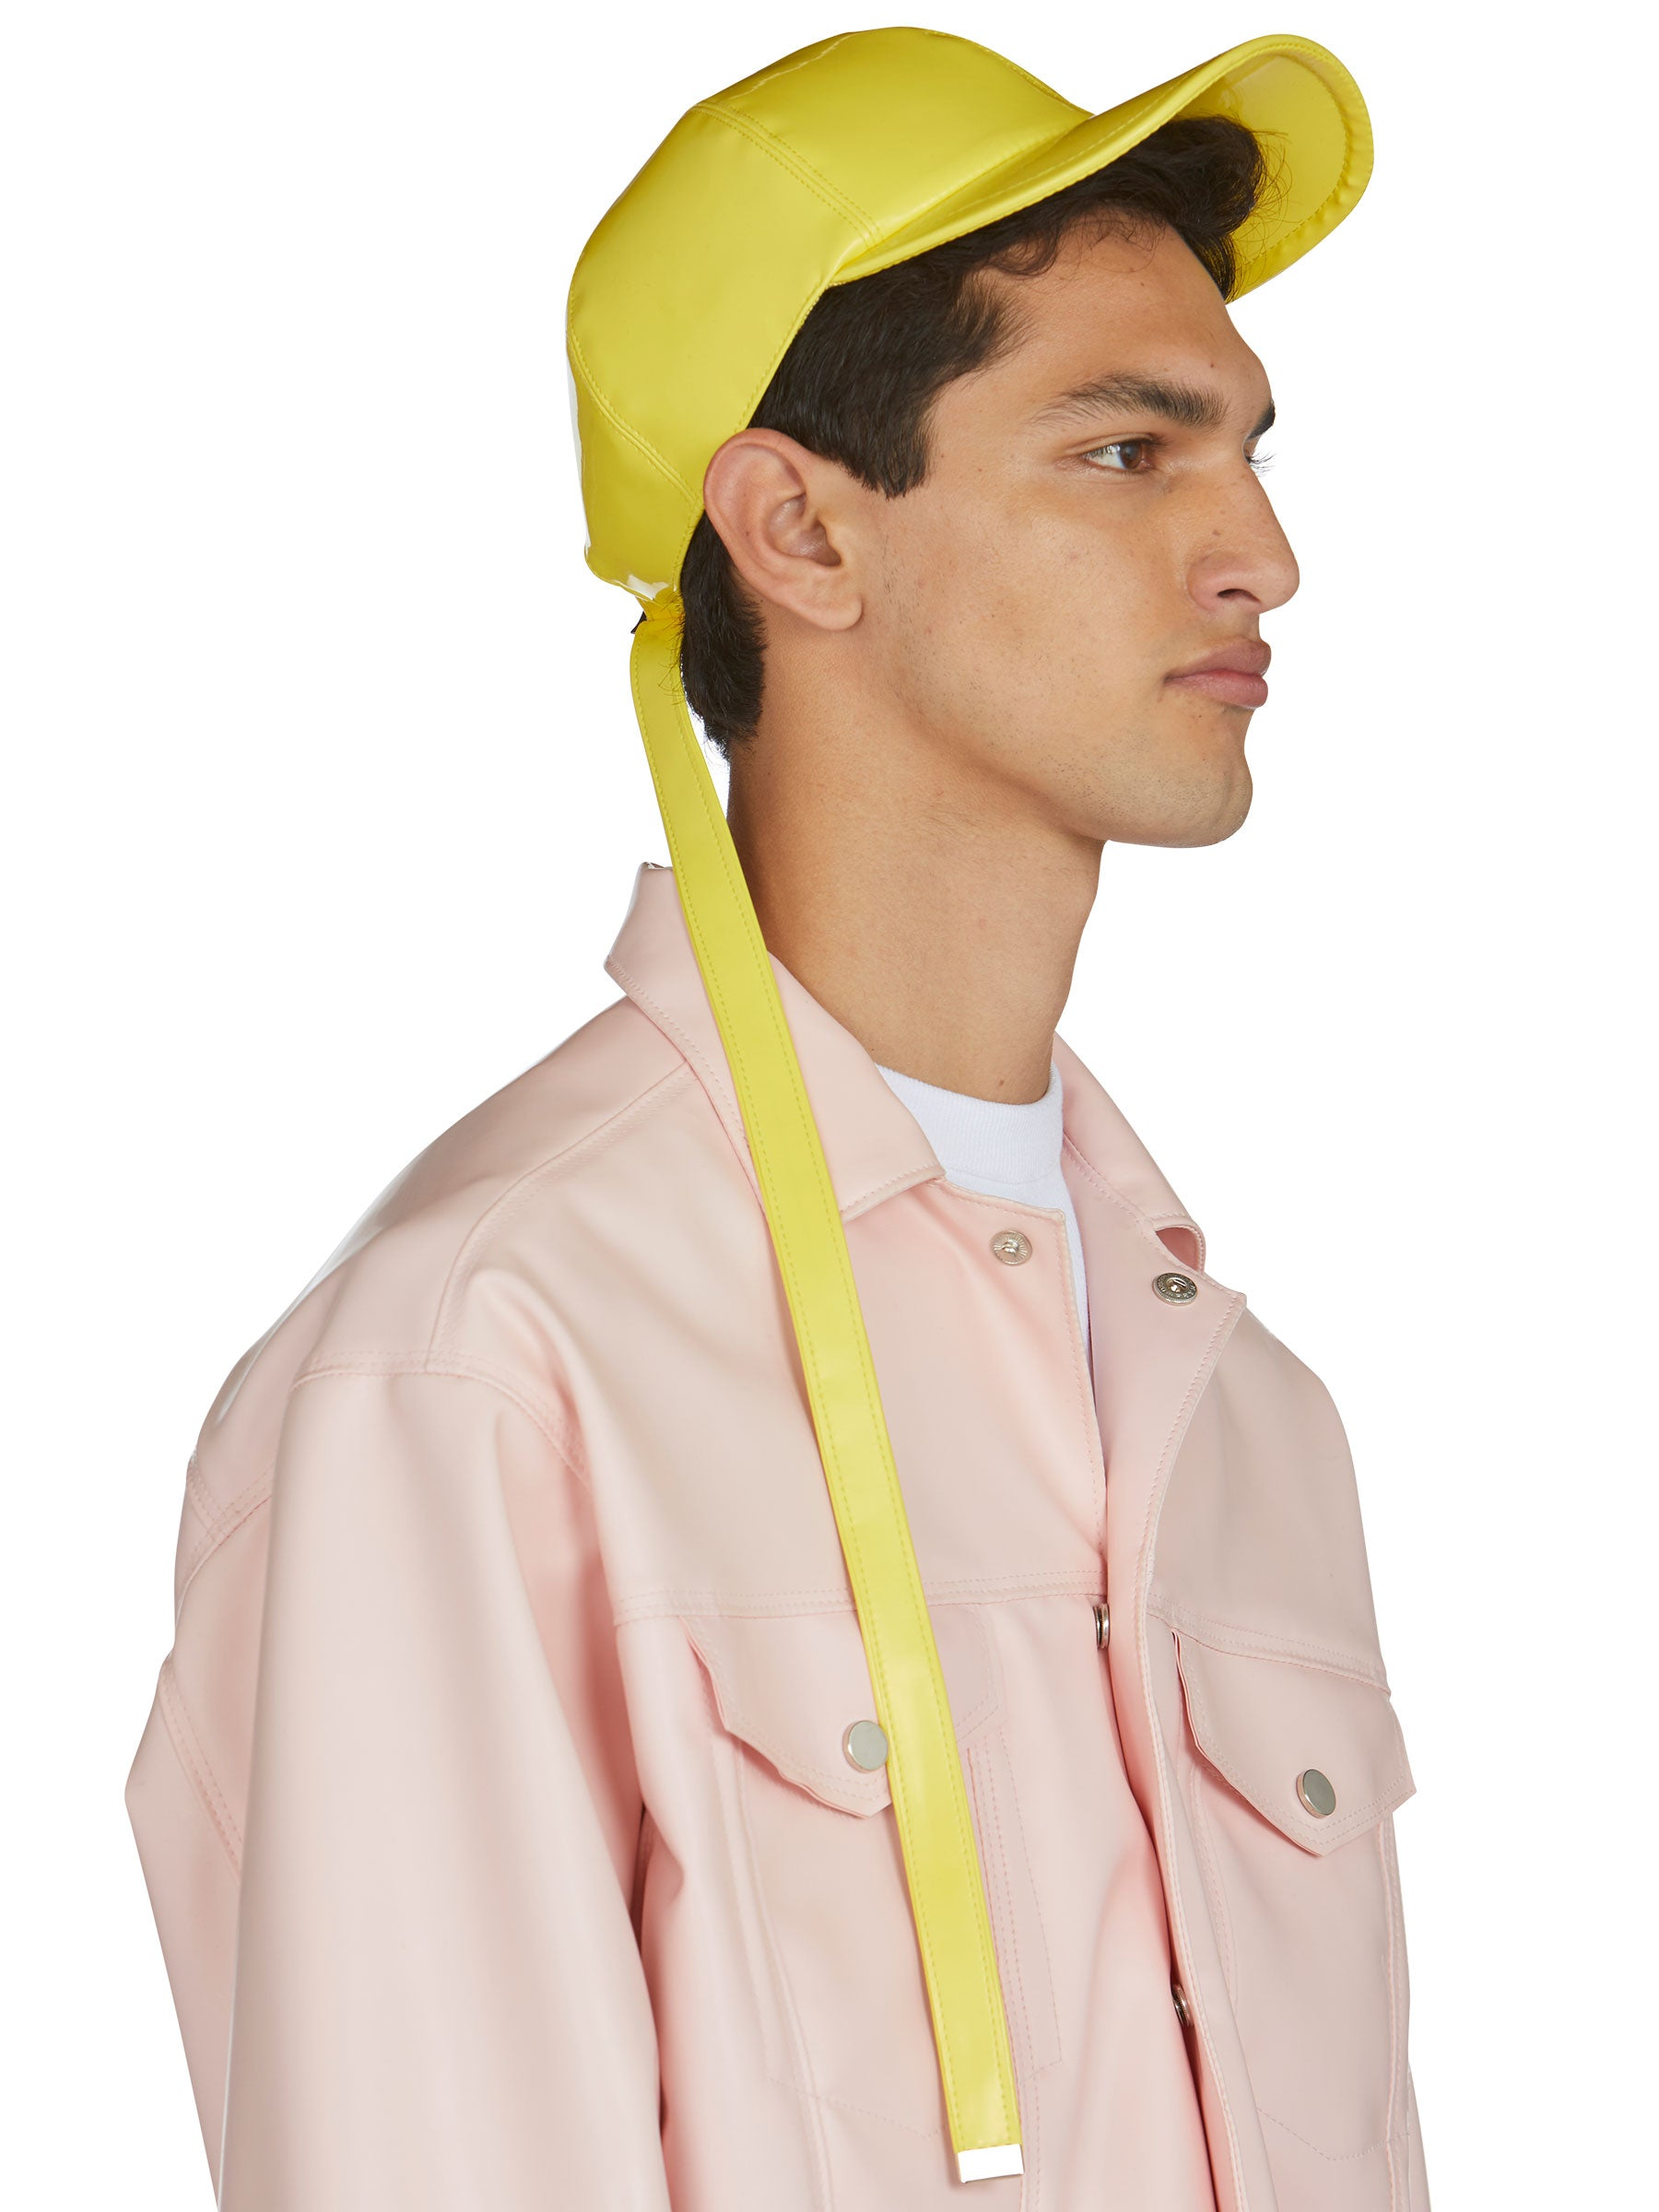 odd92 Shop Arthur Avellano Spring/Summer 2019 Menswear Womenswear Yellow Latex Cap - 3